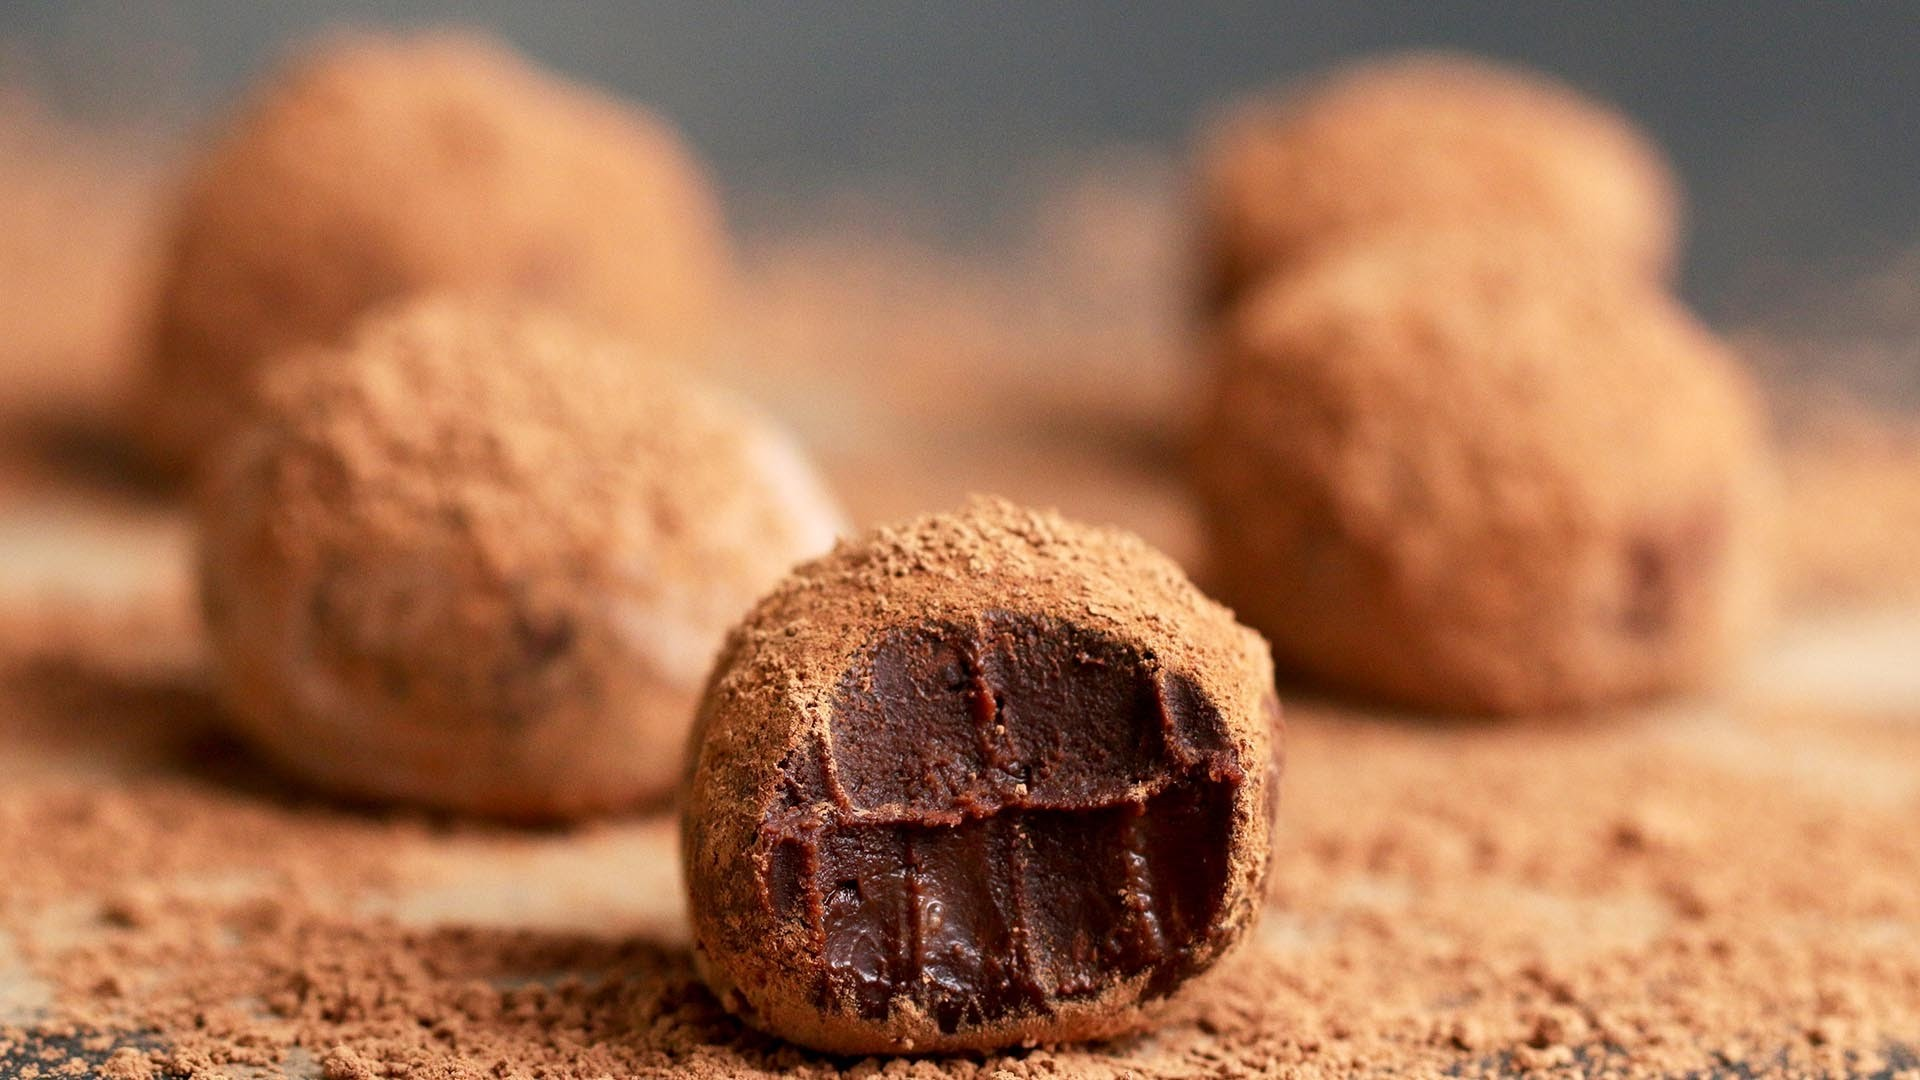 Easy Chocolate Truffles 4 Ways, My Crafts and DIY Projects